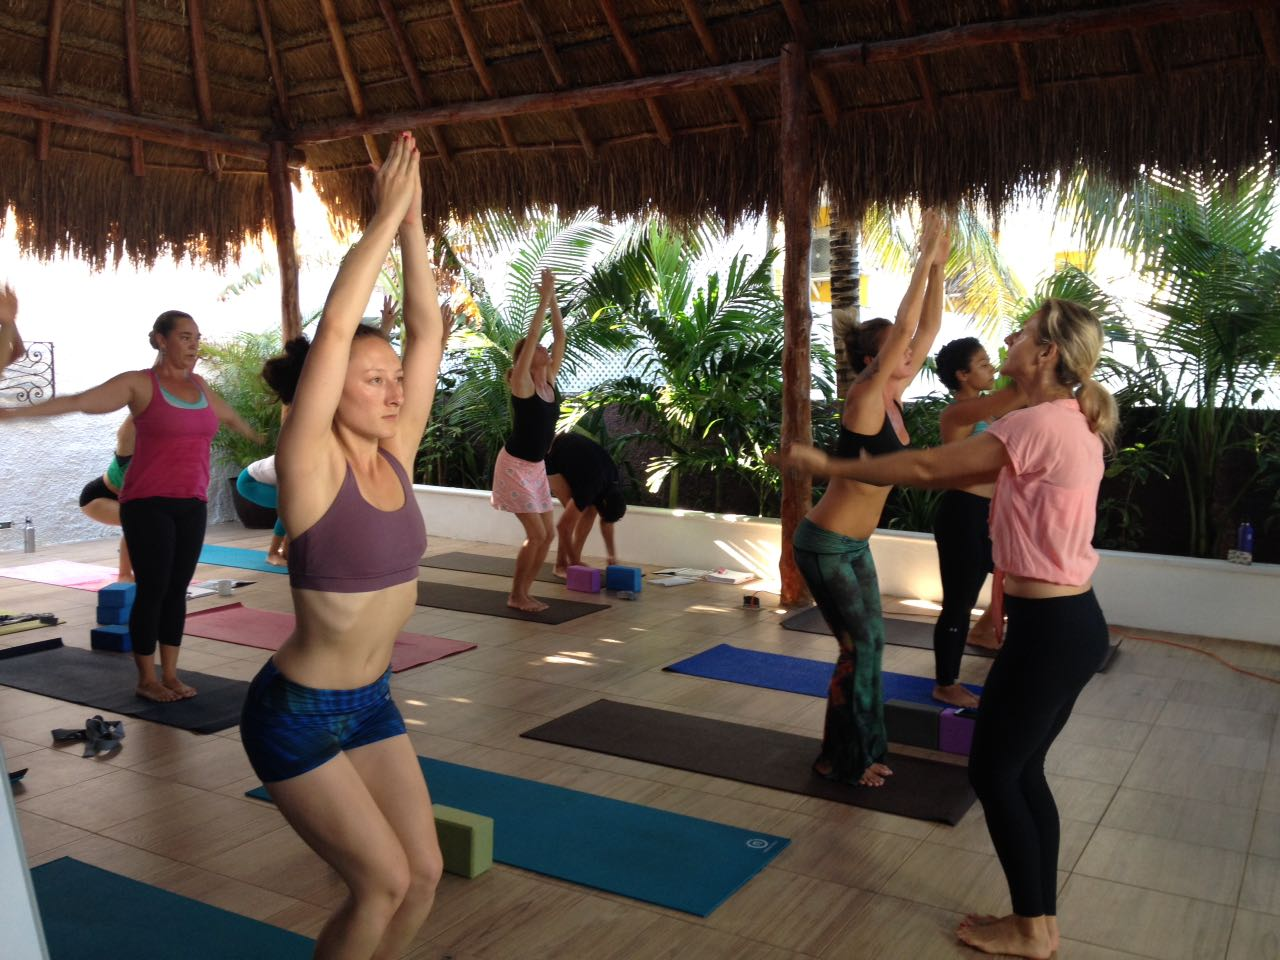 200hr YTTJanuary 2019 - January 4 -27 2019Isla Mujeres, MexicoRed Buddha Yoga + WellnessBefore August 15 2018 $2200USDAfter August 15, $2600USD15 students max capacity.